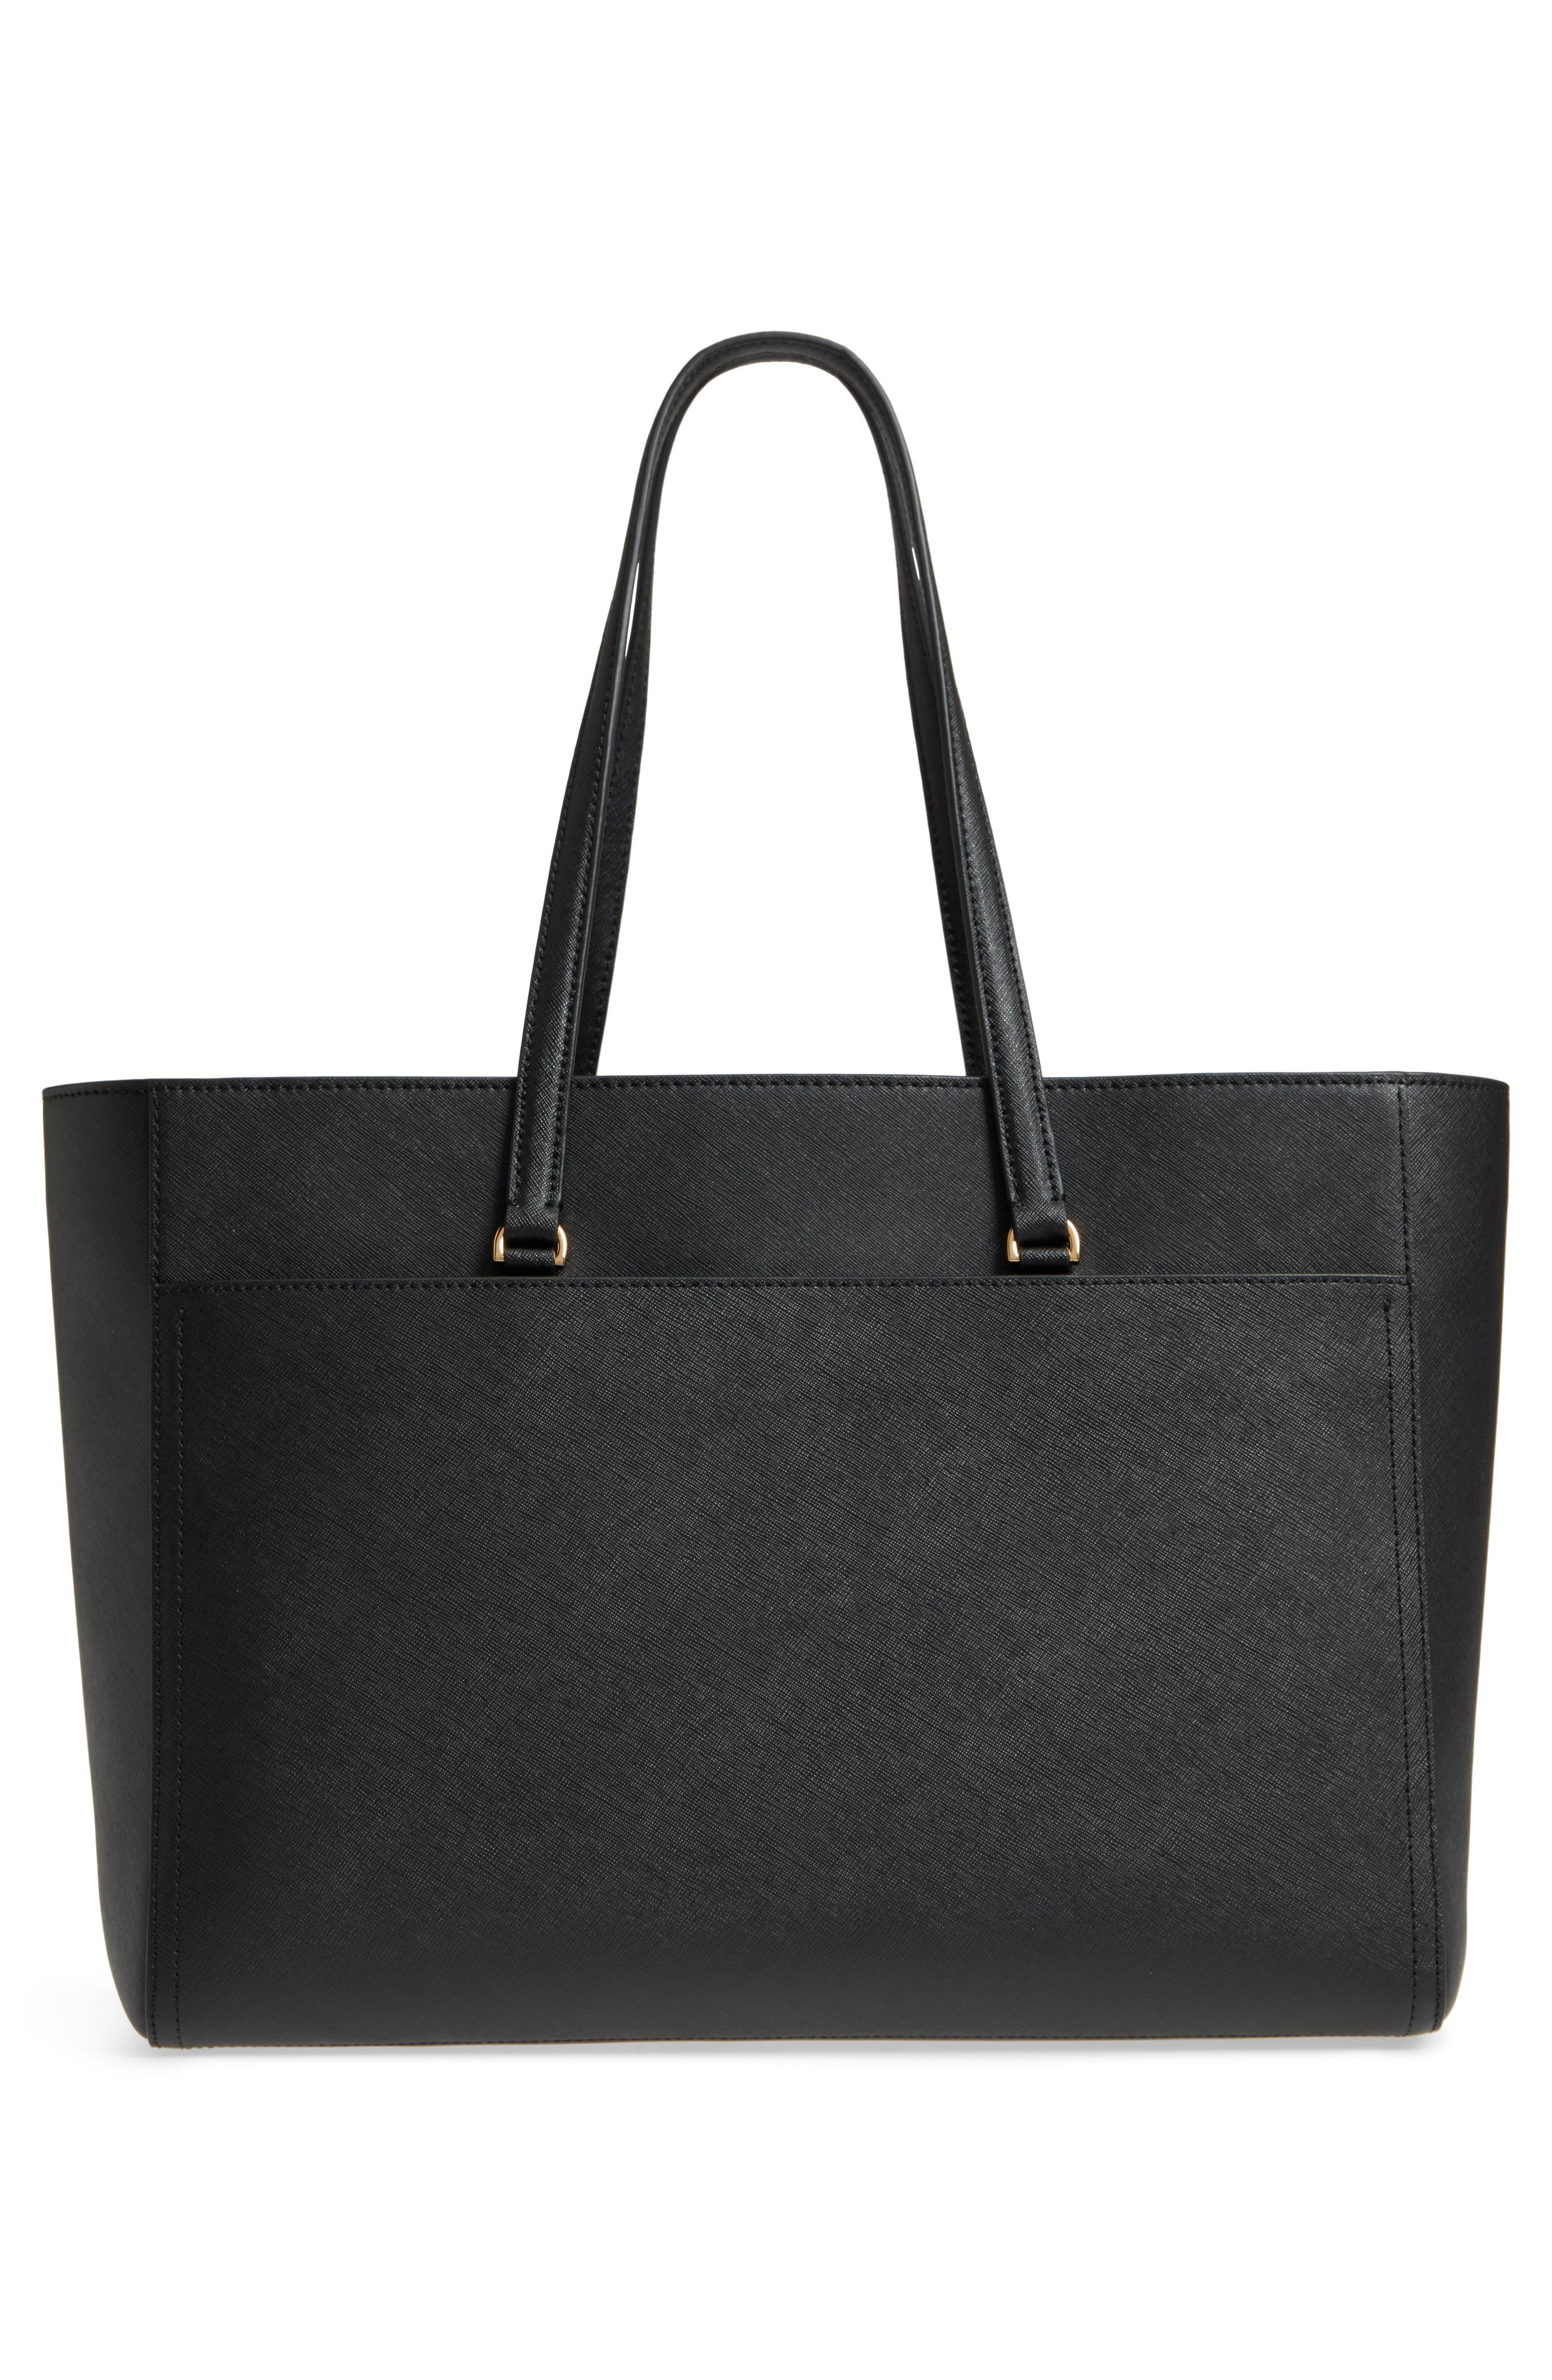 TORY BURCH, Robinson Leather Tote, Alternate thumbnail 4, color, 001